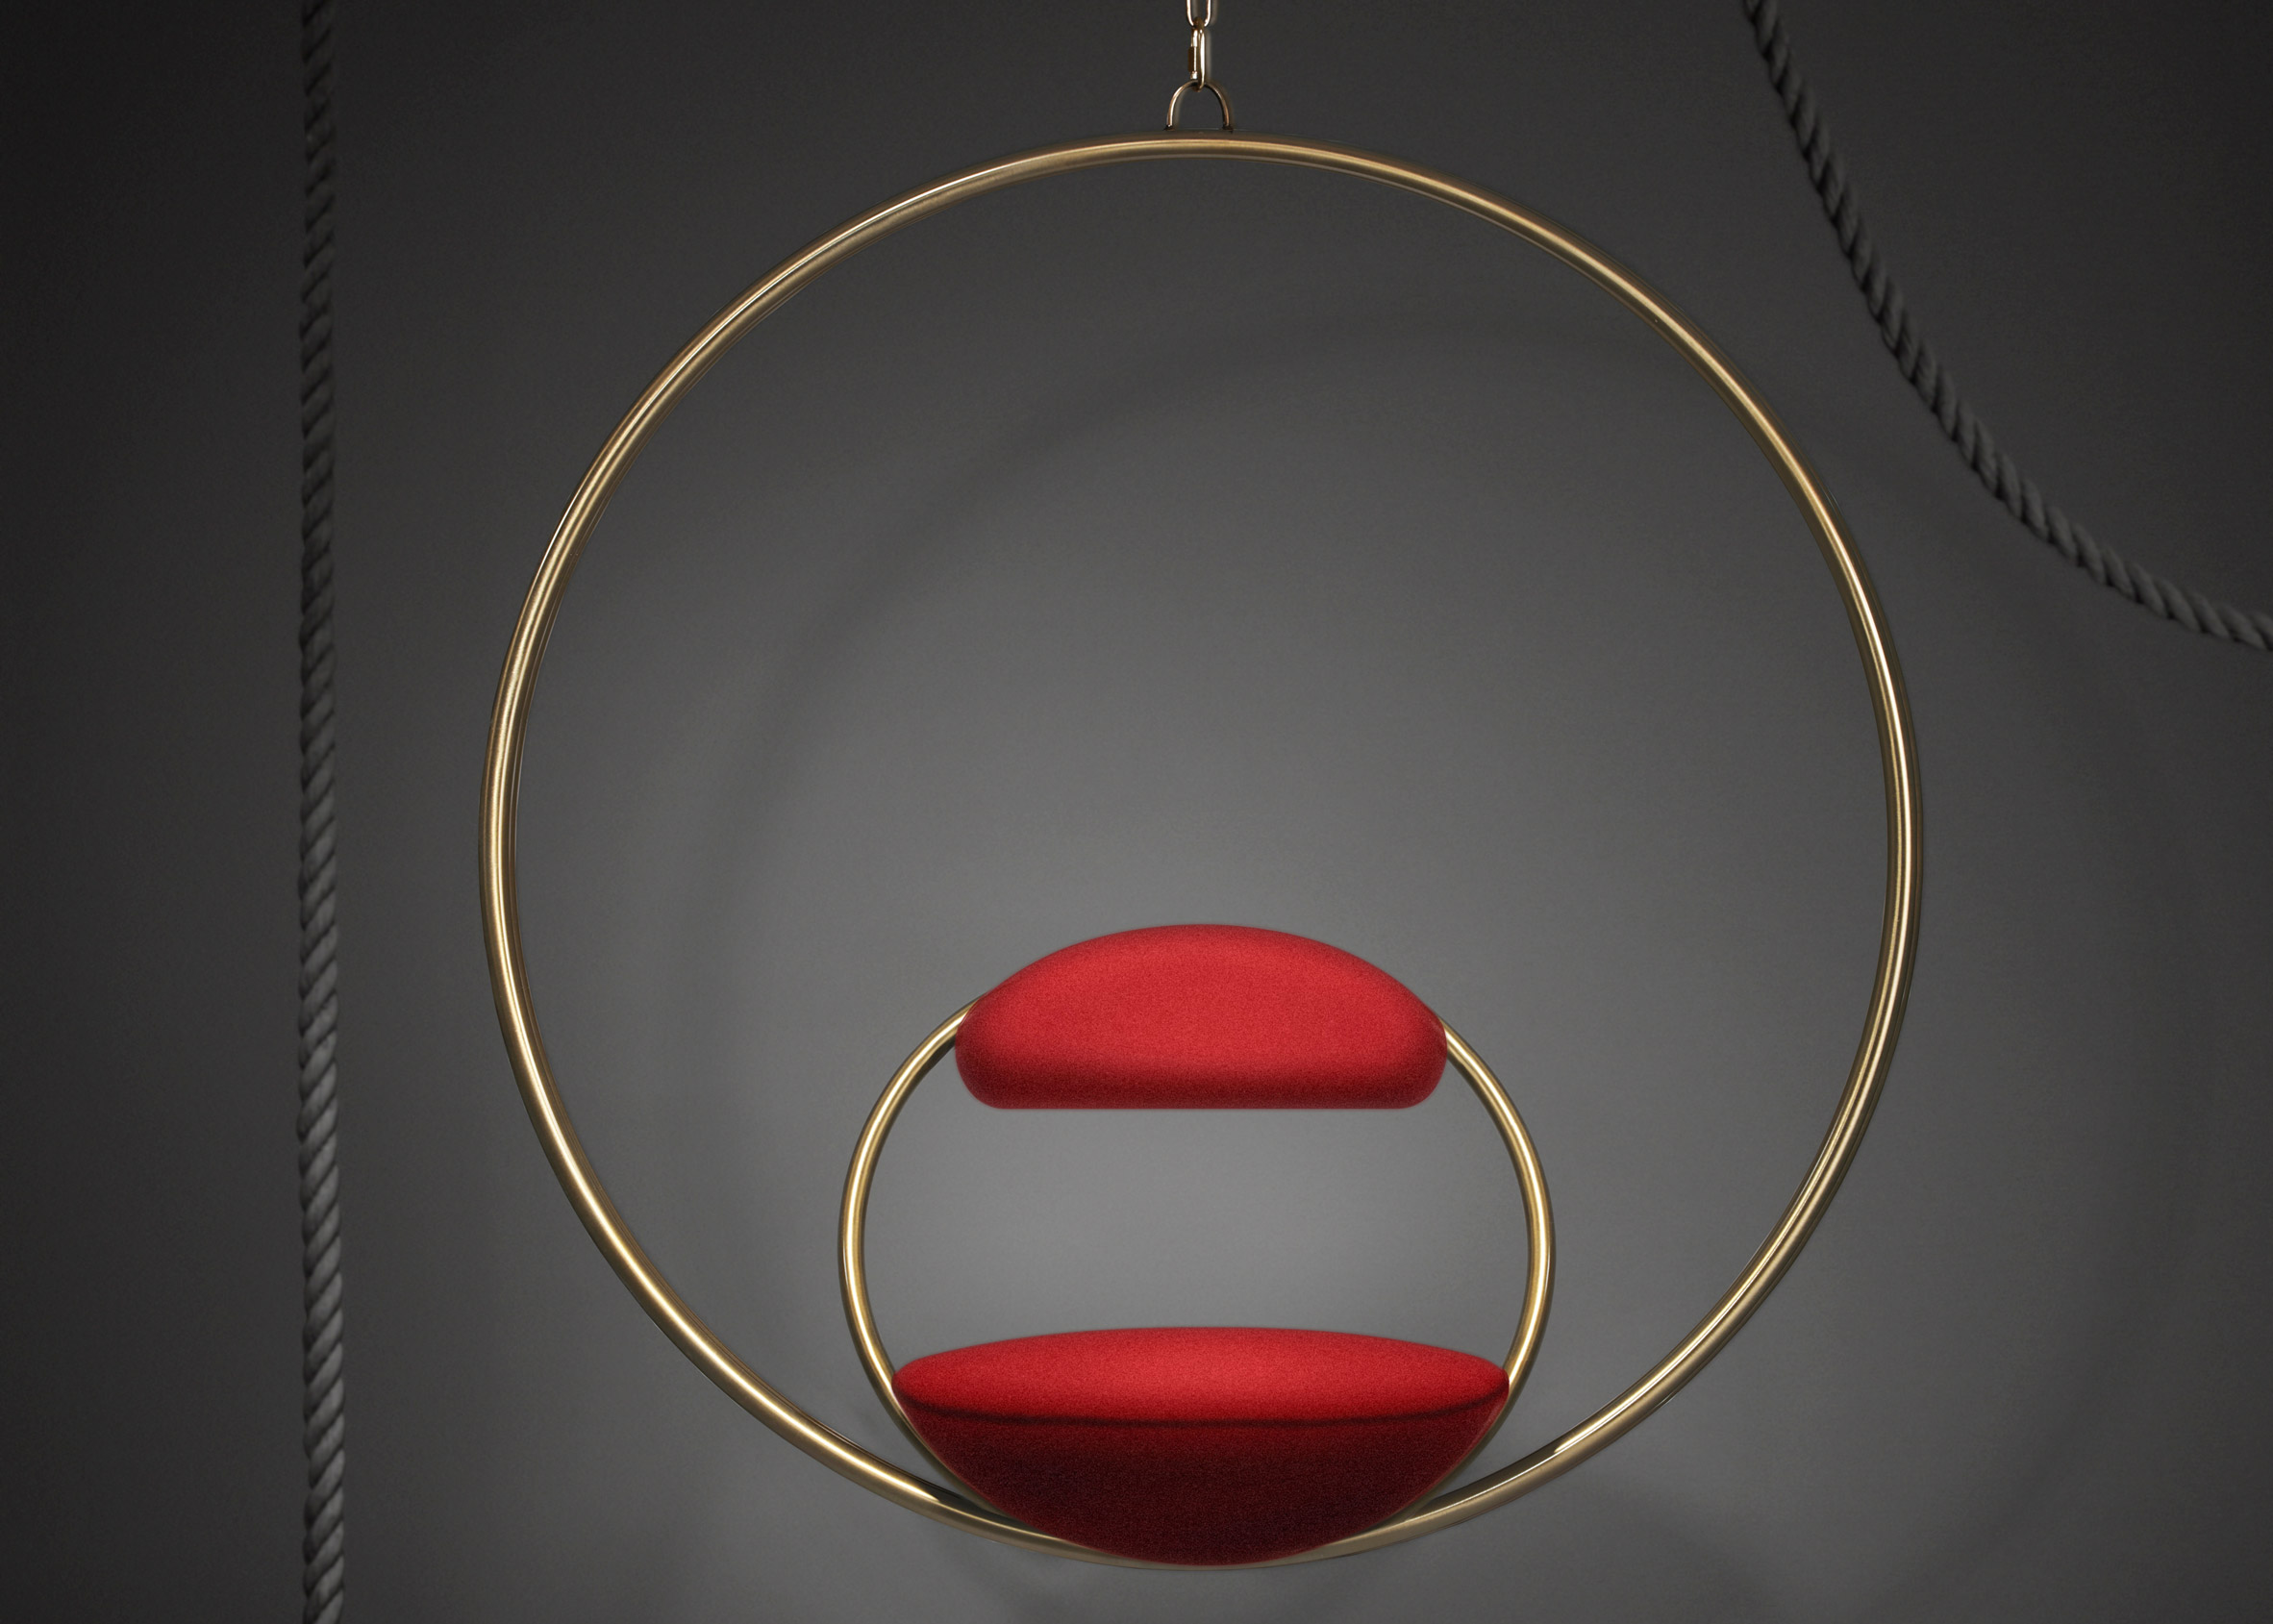 Hanging Hoop Chair by Lee Broom